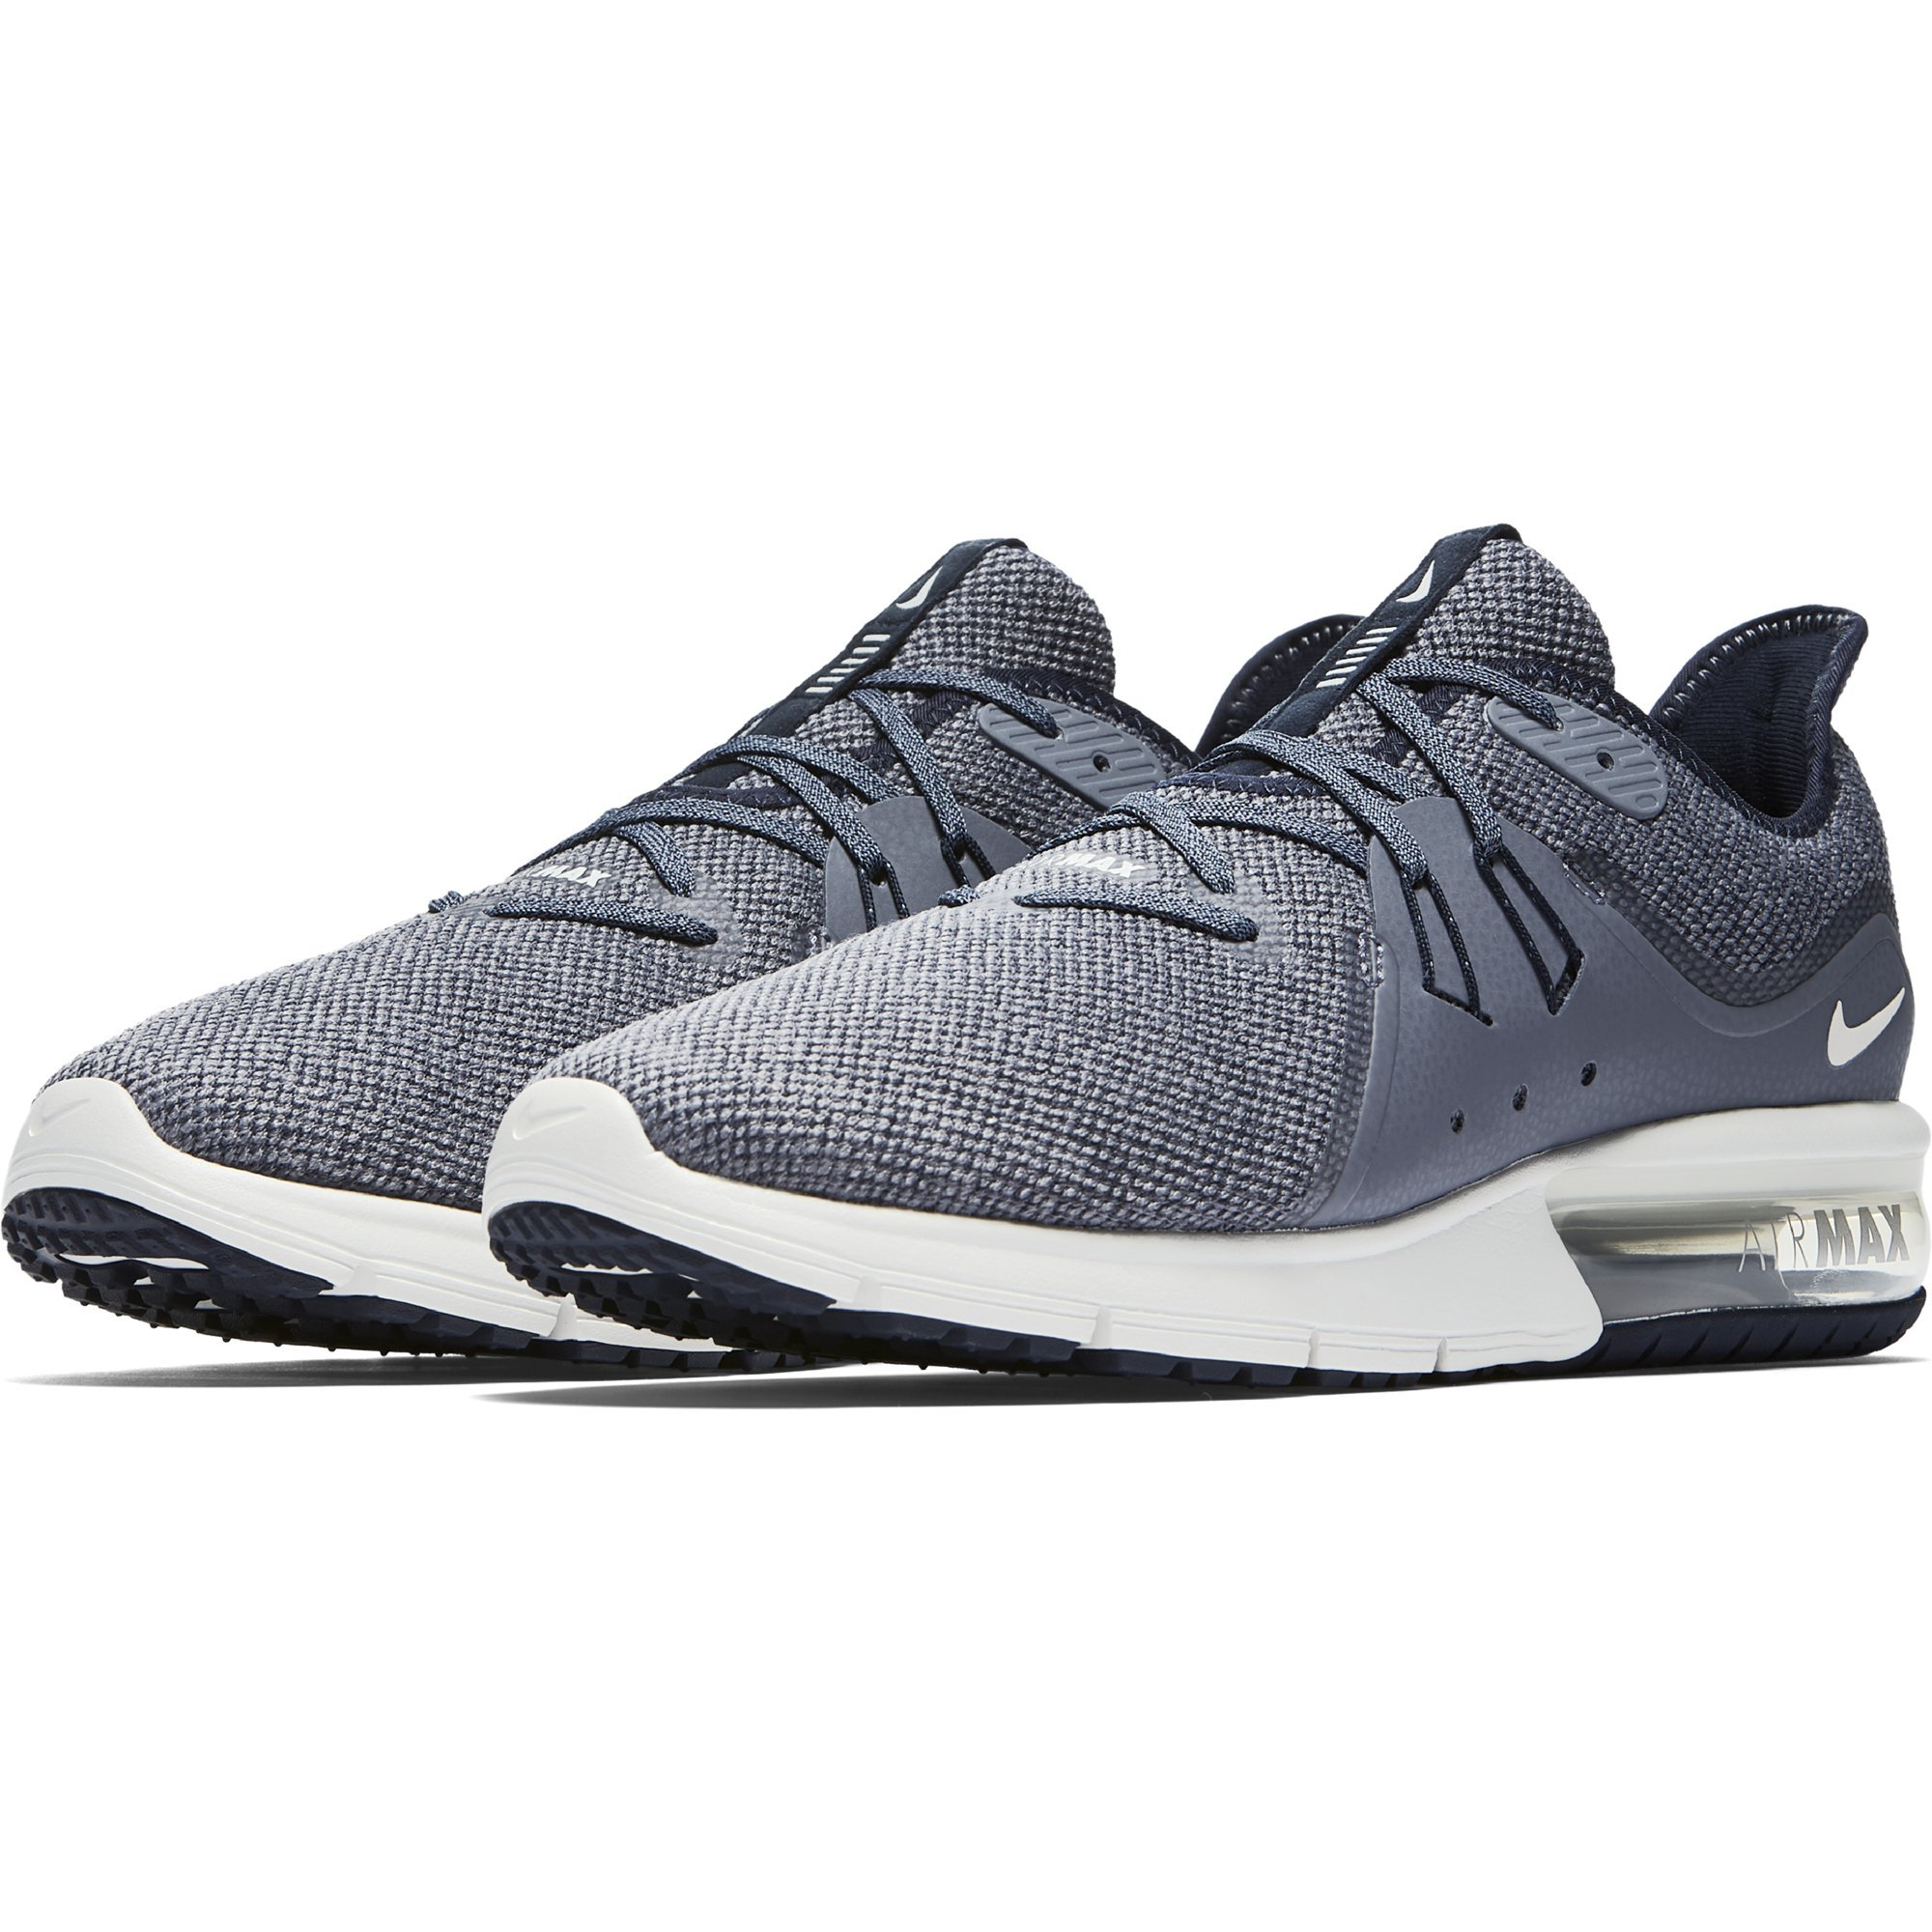 NIKE Air Max Sequent 3-921694402 - Color Graphite-Blue - Size: 9.0 by NIKE